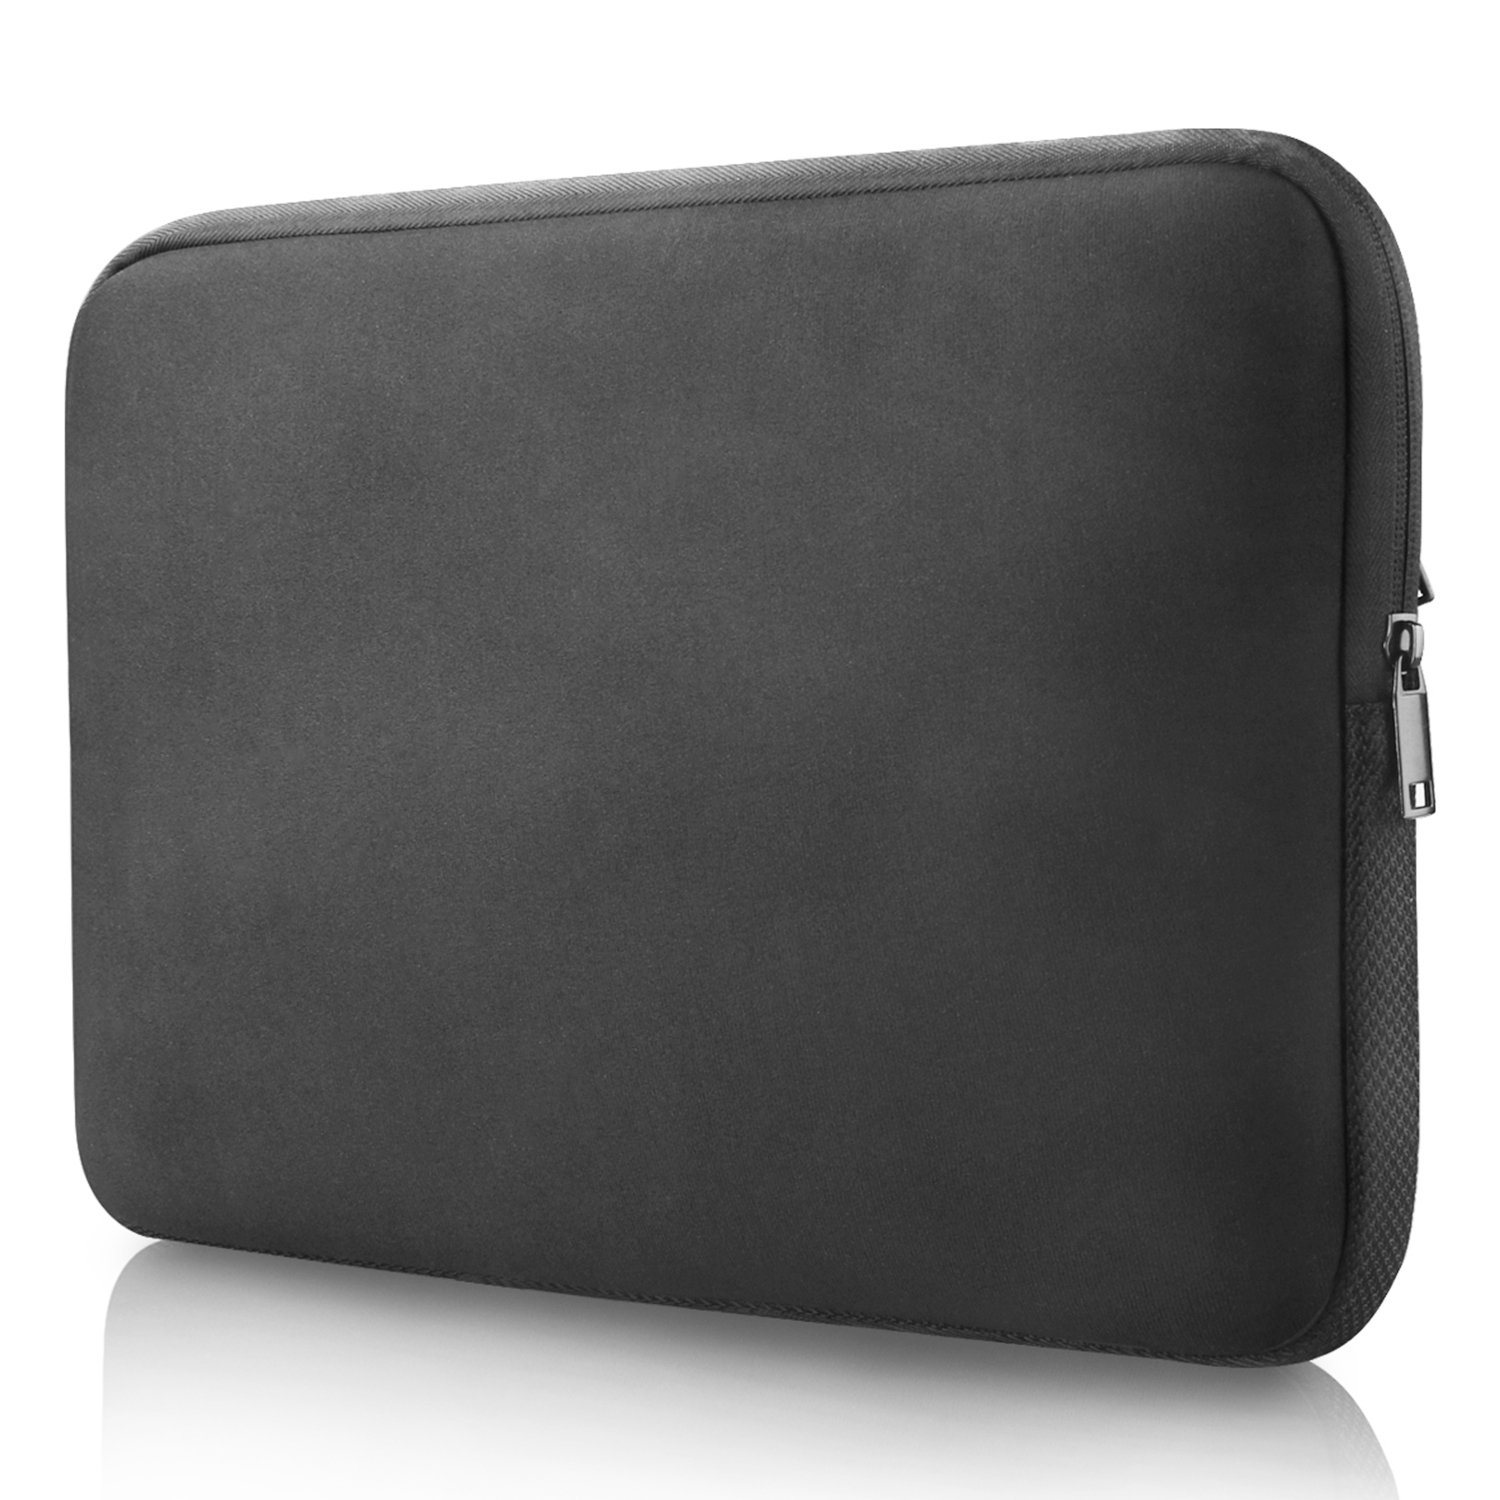 ProCase 11-12 Inch Laptop Tablet Sleeve Case Bag for 12 Inch Macbook, Surface Pro 5 4 3, iPad Pro 12.9, Most 11-12 Inch Ultrabook Netbook MacBook Chromebook -Black by ProCase (Image #5)